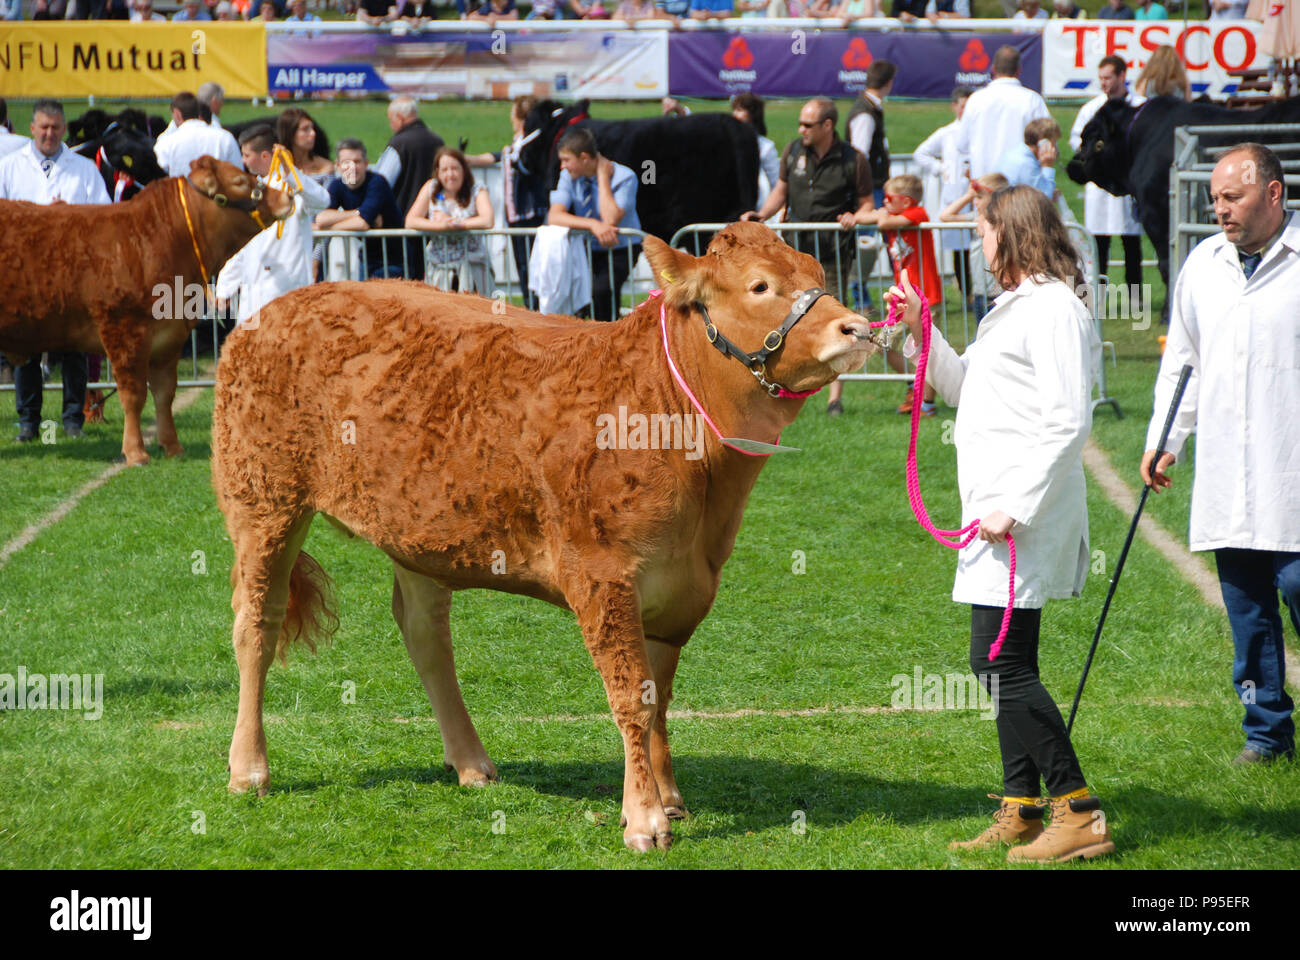 Bull with its handler in the judging ring on the showground at the Royal Welsh Show. The show is one of Europe's biggest agricultural events. - Stock Image